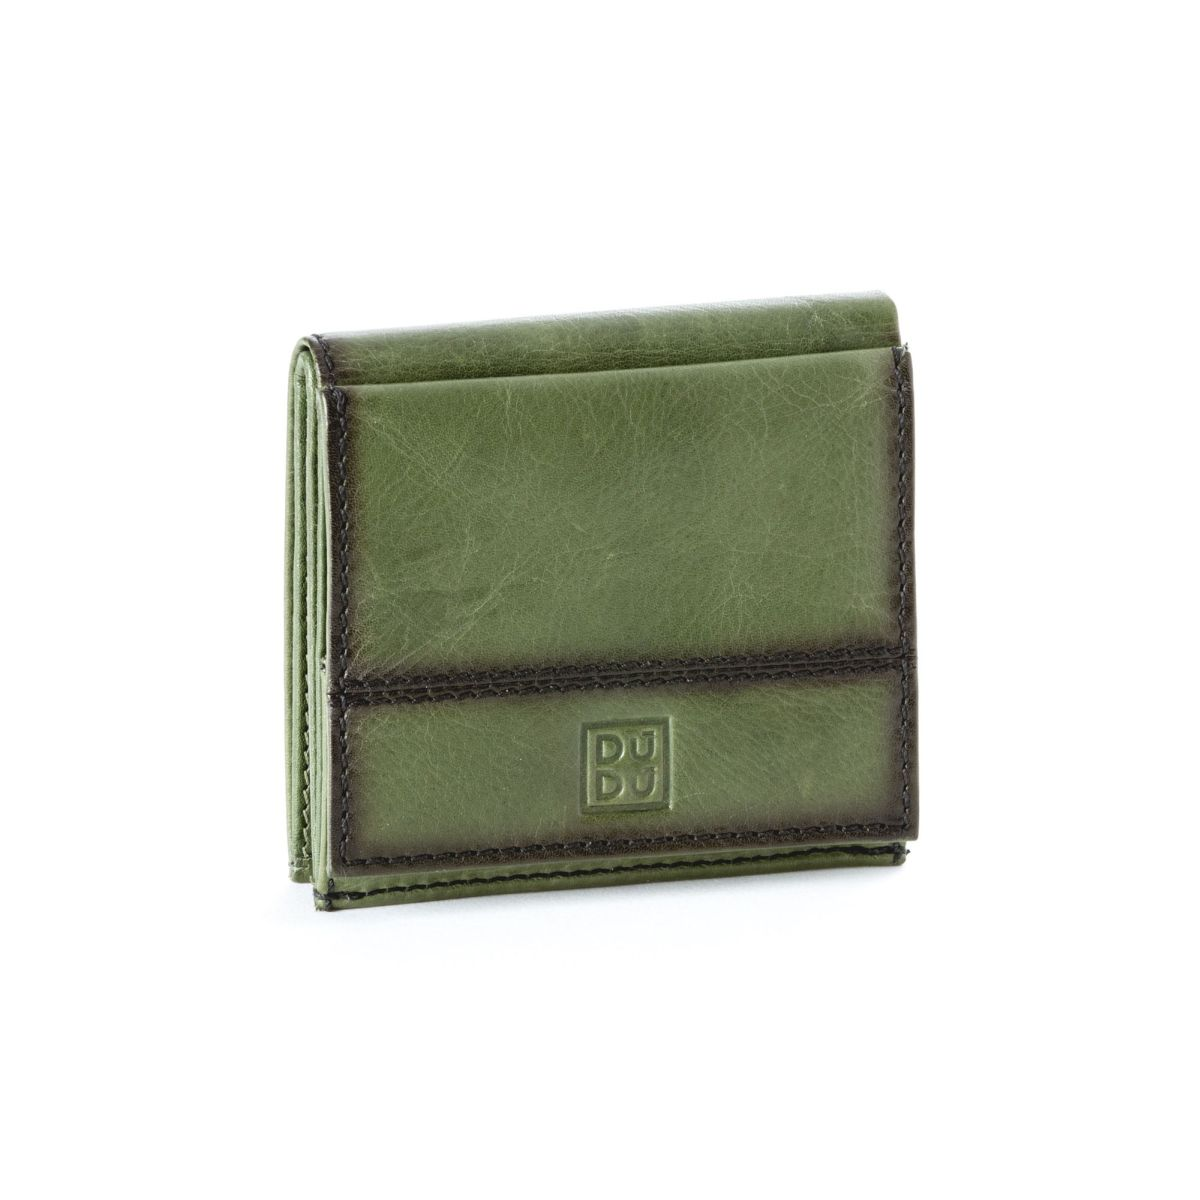 DuDu Small Unique Wallet  - Green